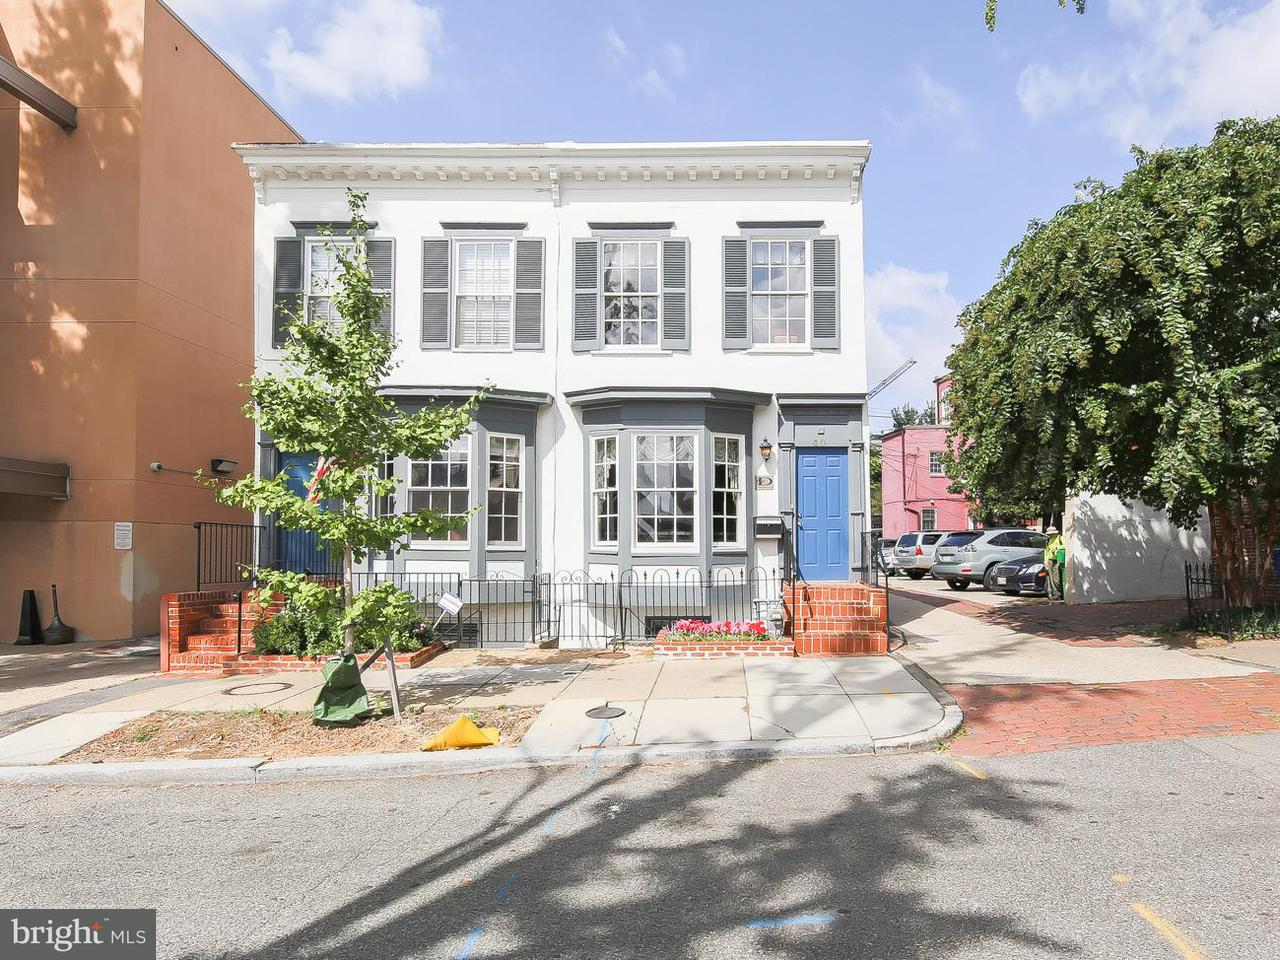 Other Residential for Rent at 40 Ivy St SE Washington, District Of Columbia 20003 United States